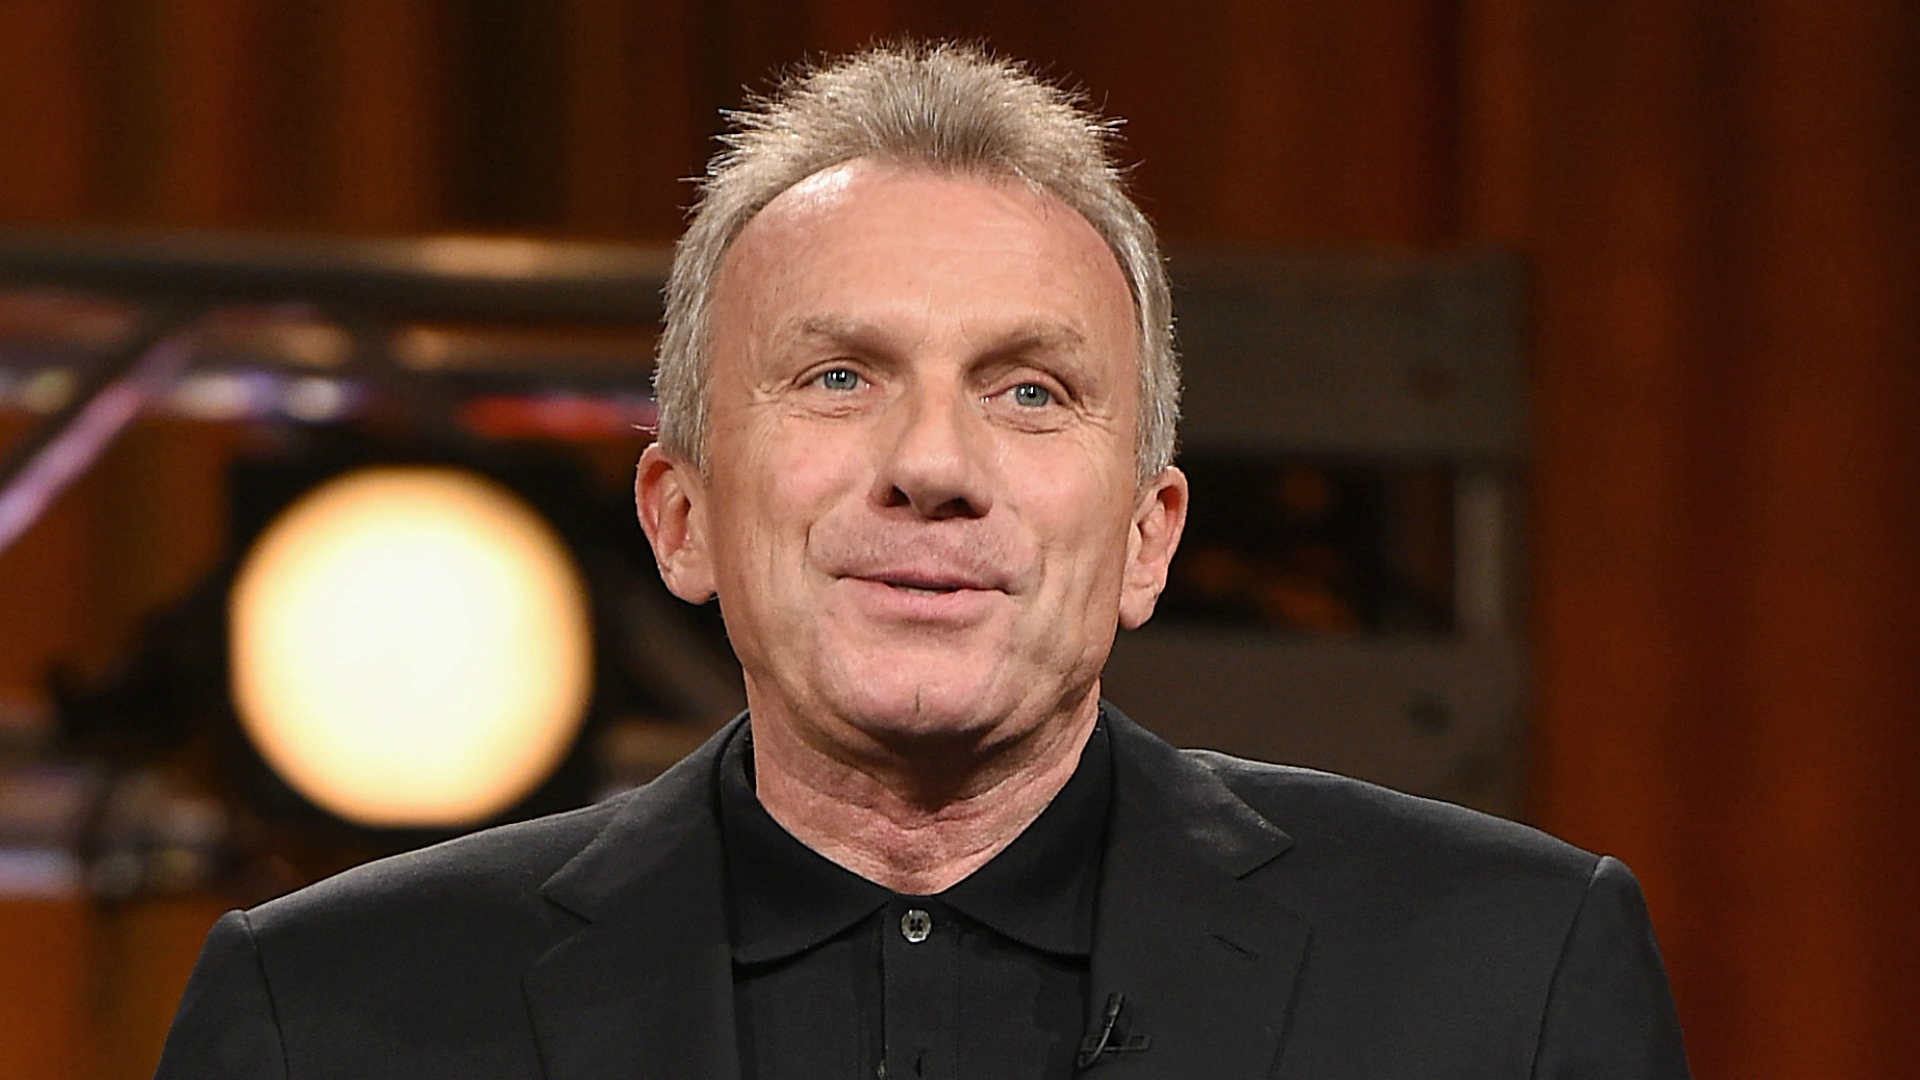 Joe Montana Makes Investment In Cannabis Company